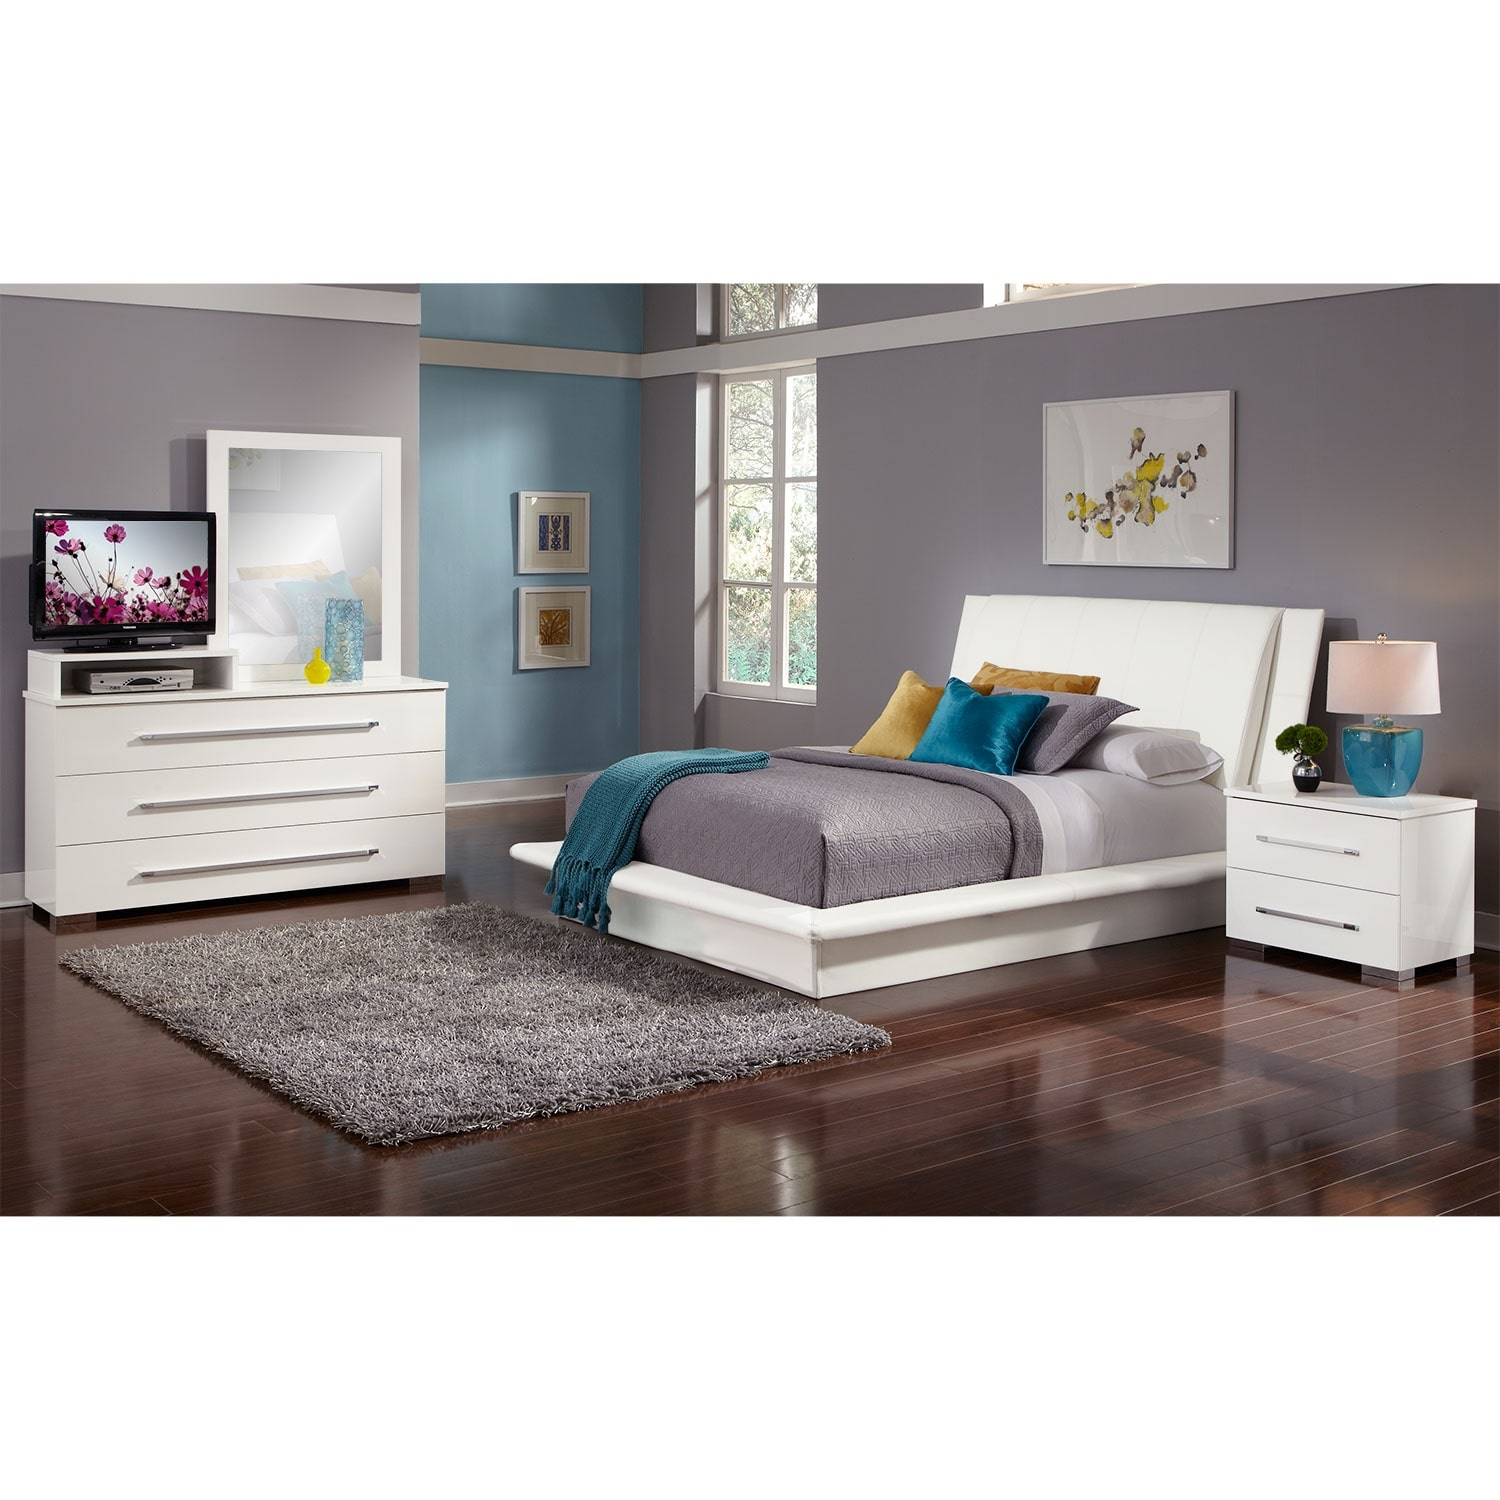 Bedroom Furniture - Dimora White 6 Pc. Queen Bedroom